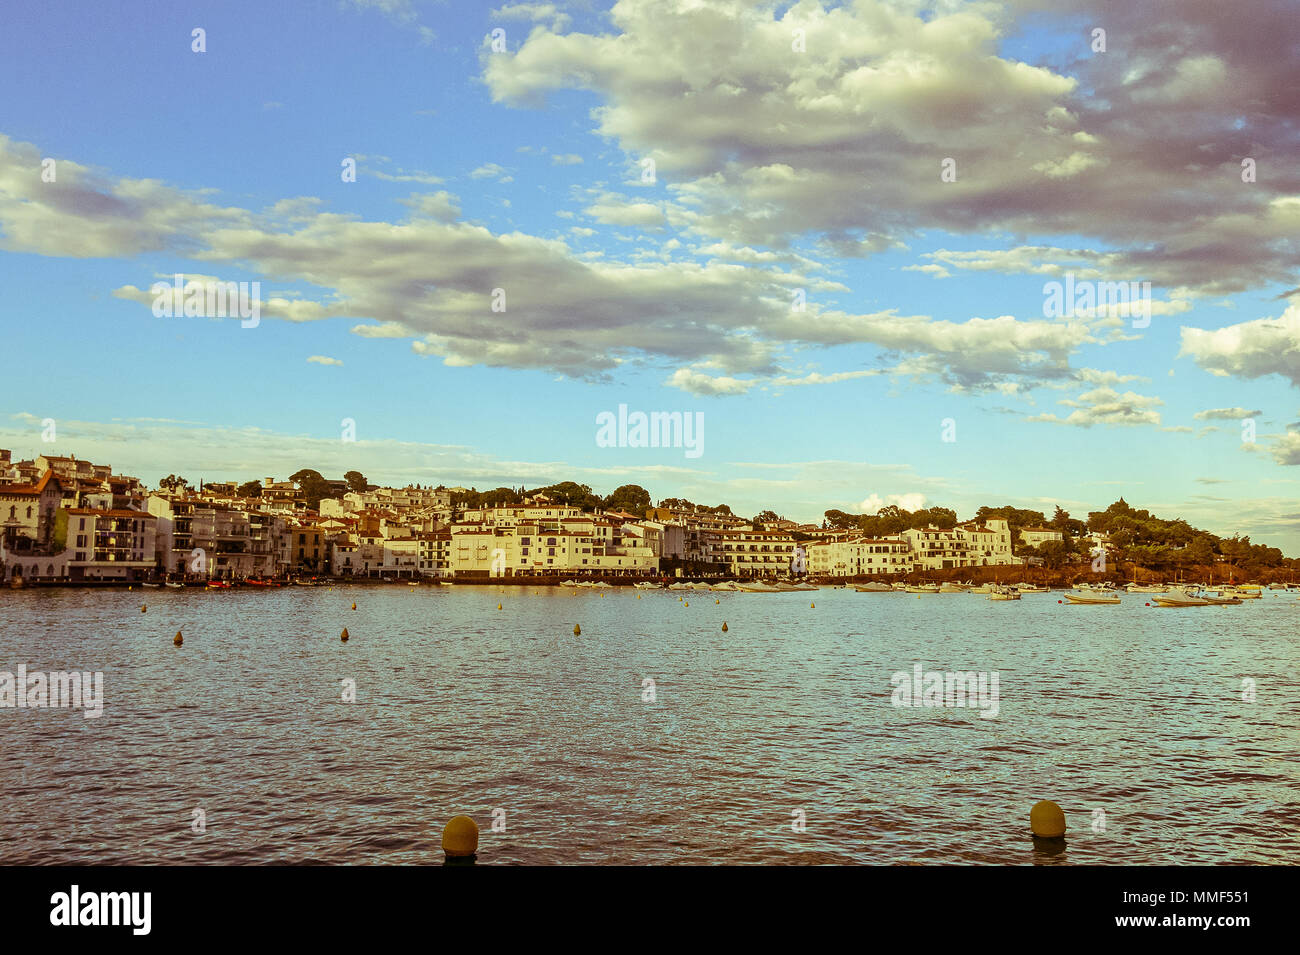 Panoramic view of Cadaques on Mediterranean seaside, Costa Brava, Catalonia, Spain. Image with vintage and yesteryear effect - Stock Image